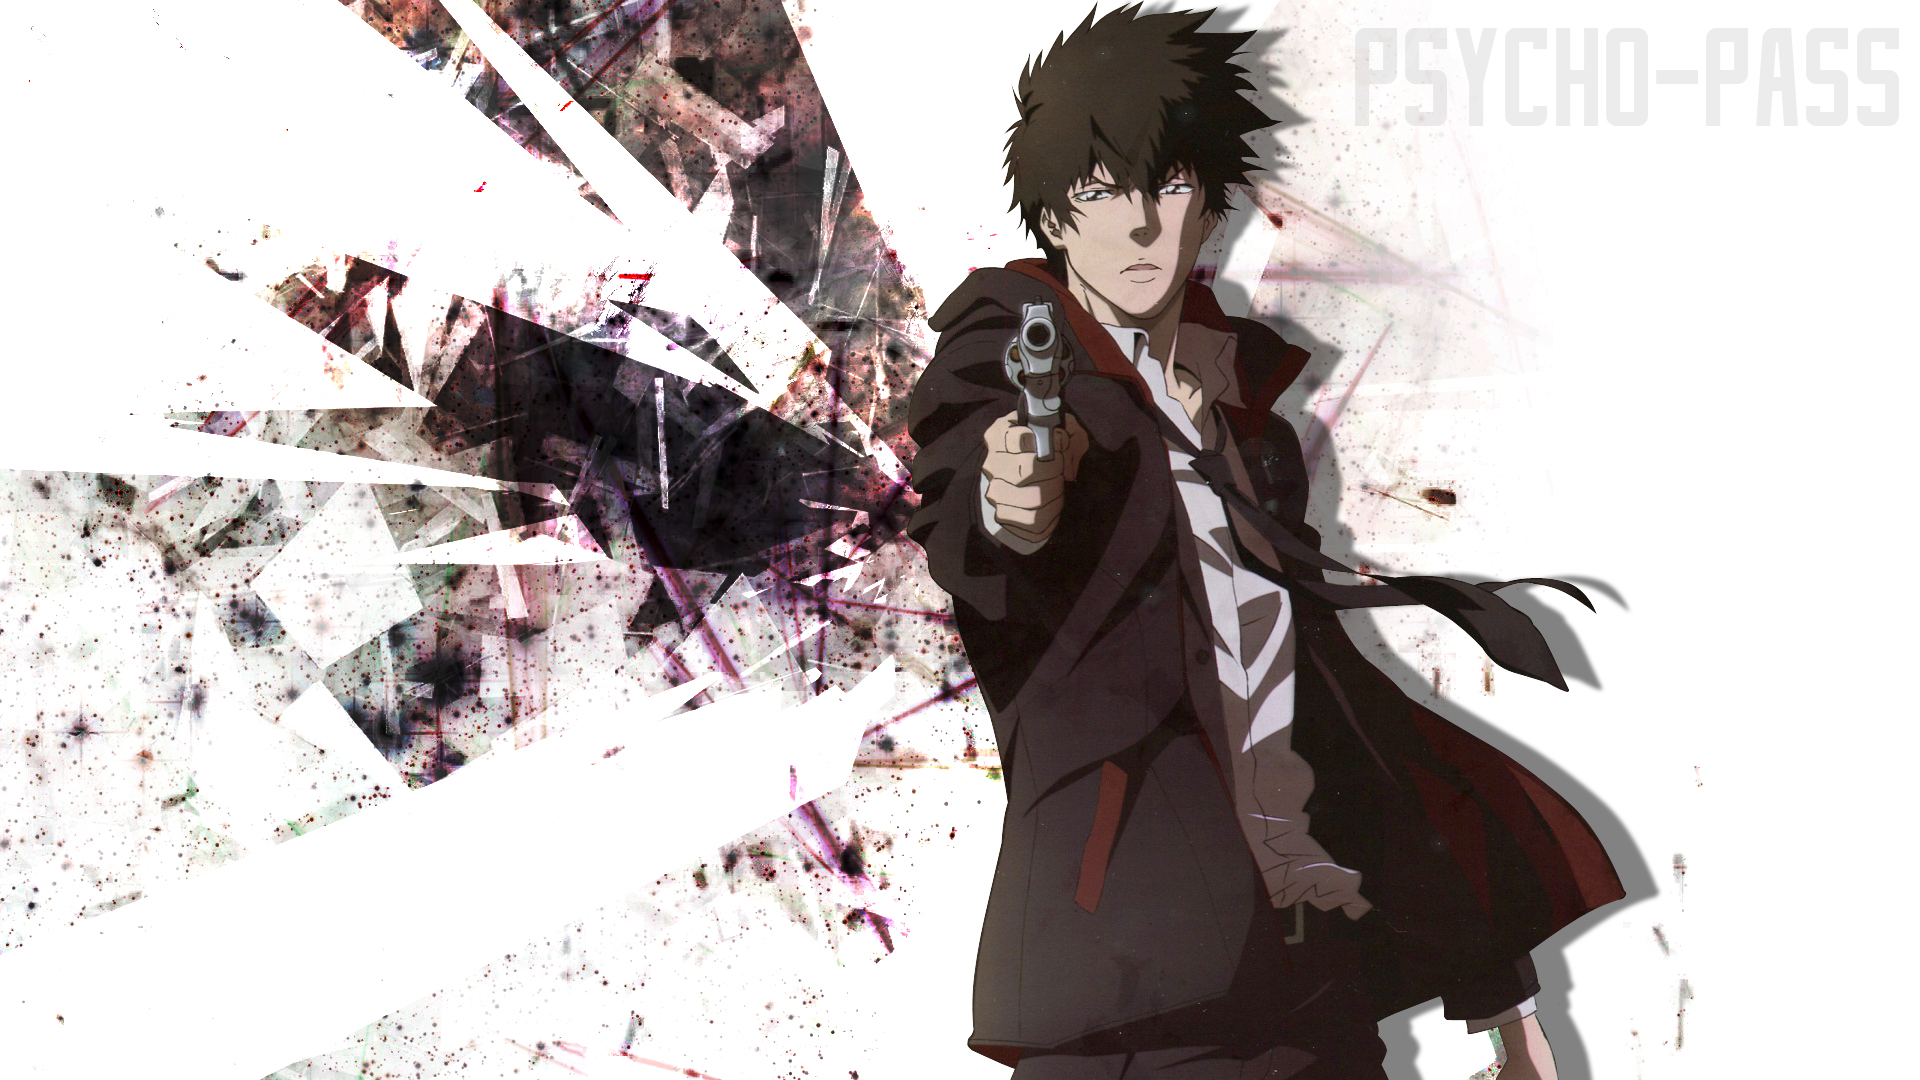 Psycho Pass Hd Wallpaper Background Image 1920x1080 Id690820